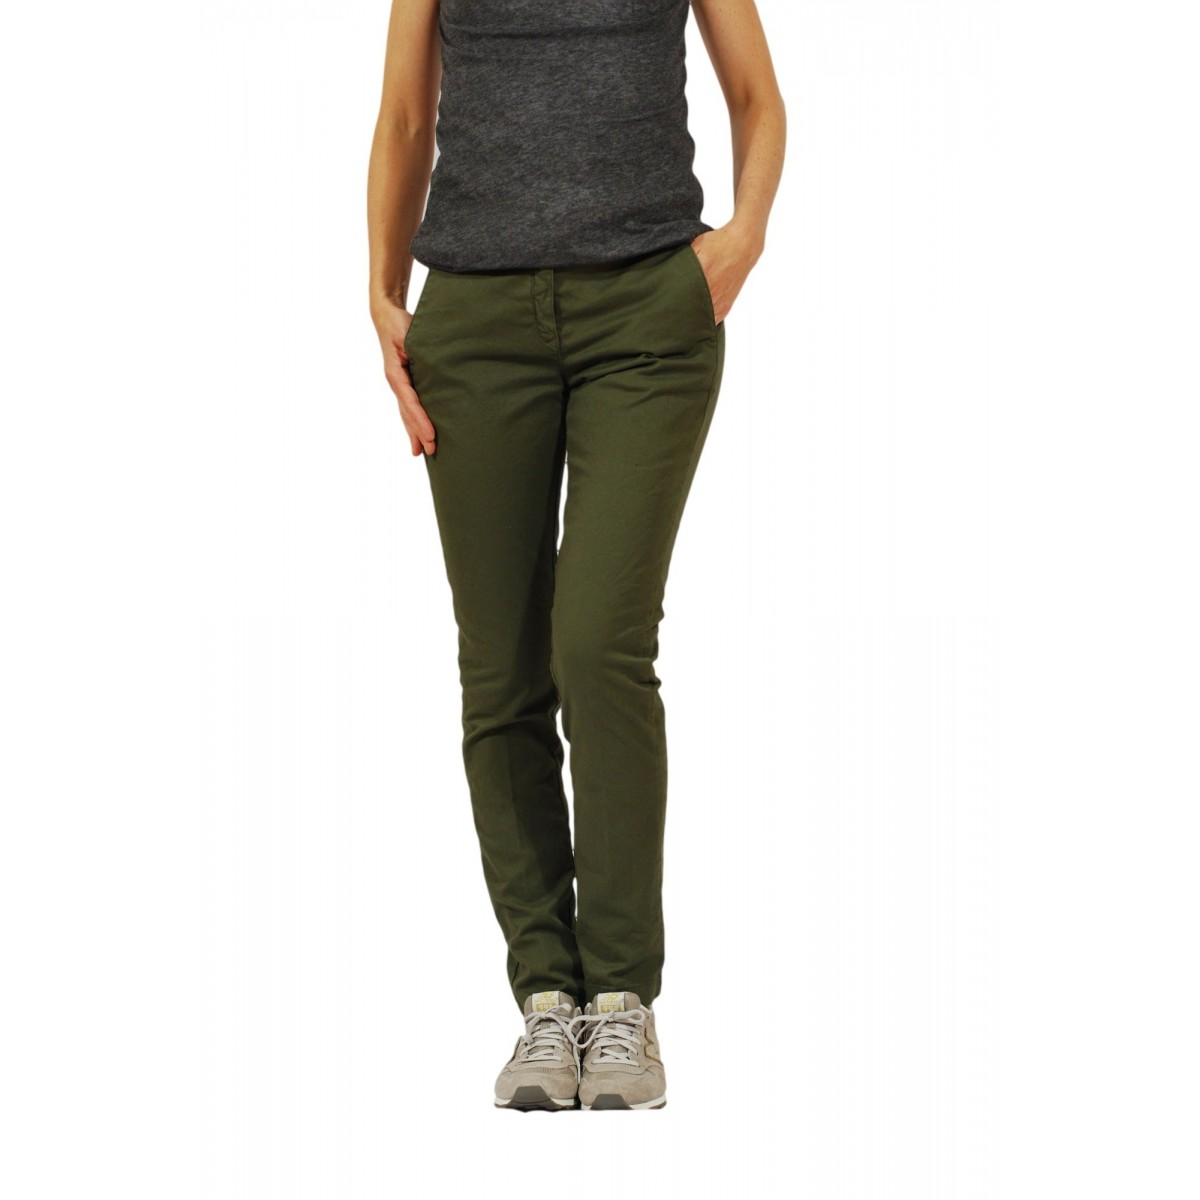 Trouser Woman Department Five - P051 T0001 460 Gabardina Strec Trouser Woman Gabardina